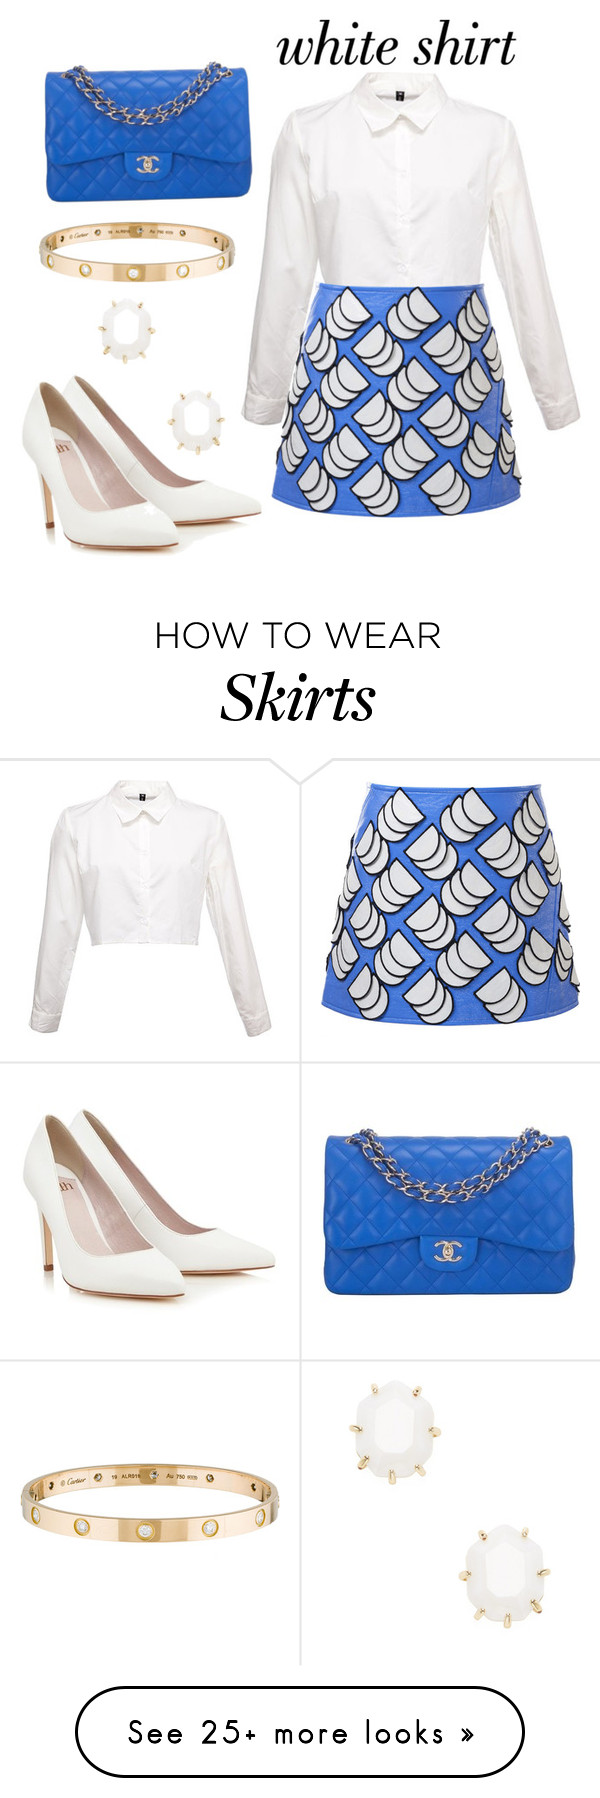 """""""#whiteshirt #blueskirt #skirt"""" by star-wars-princess on Polyvore featuring Courrèges, Chanel, Lipsy, Cartier, Kendra Scott and WardrobeStaples"""